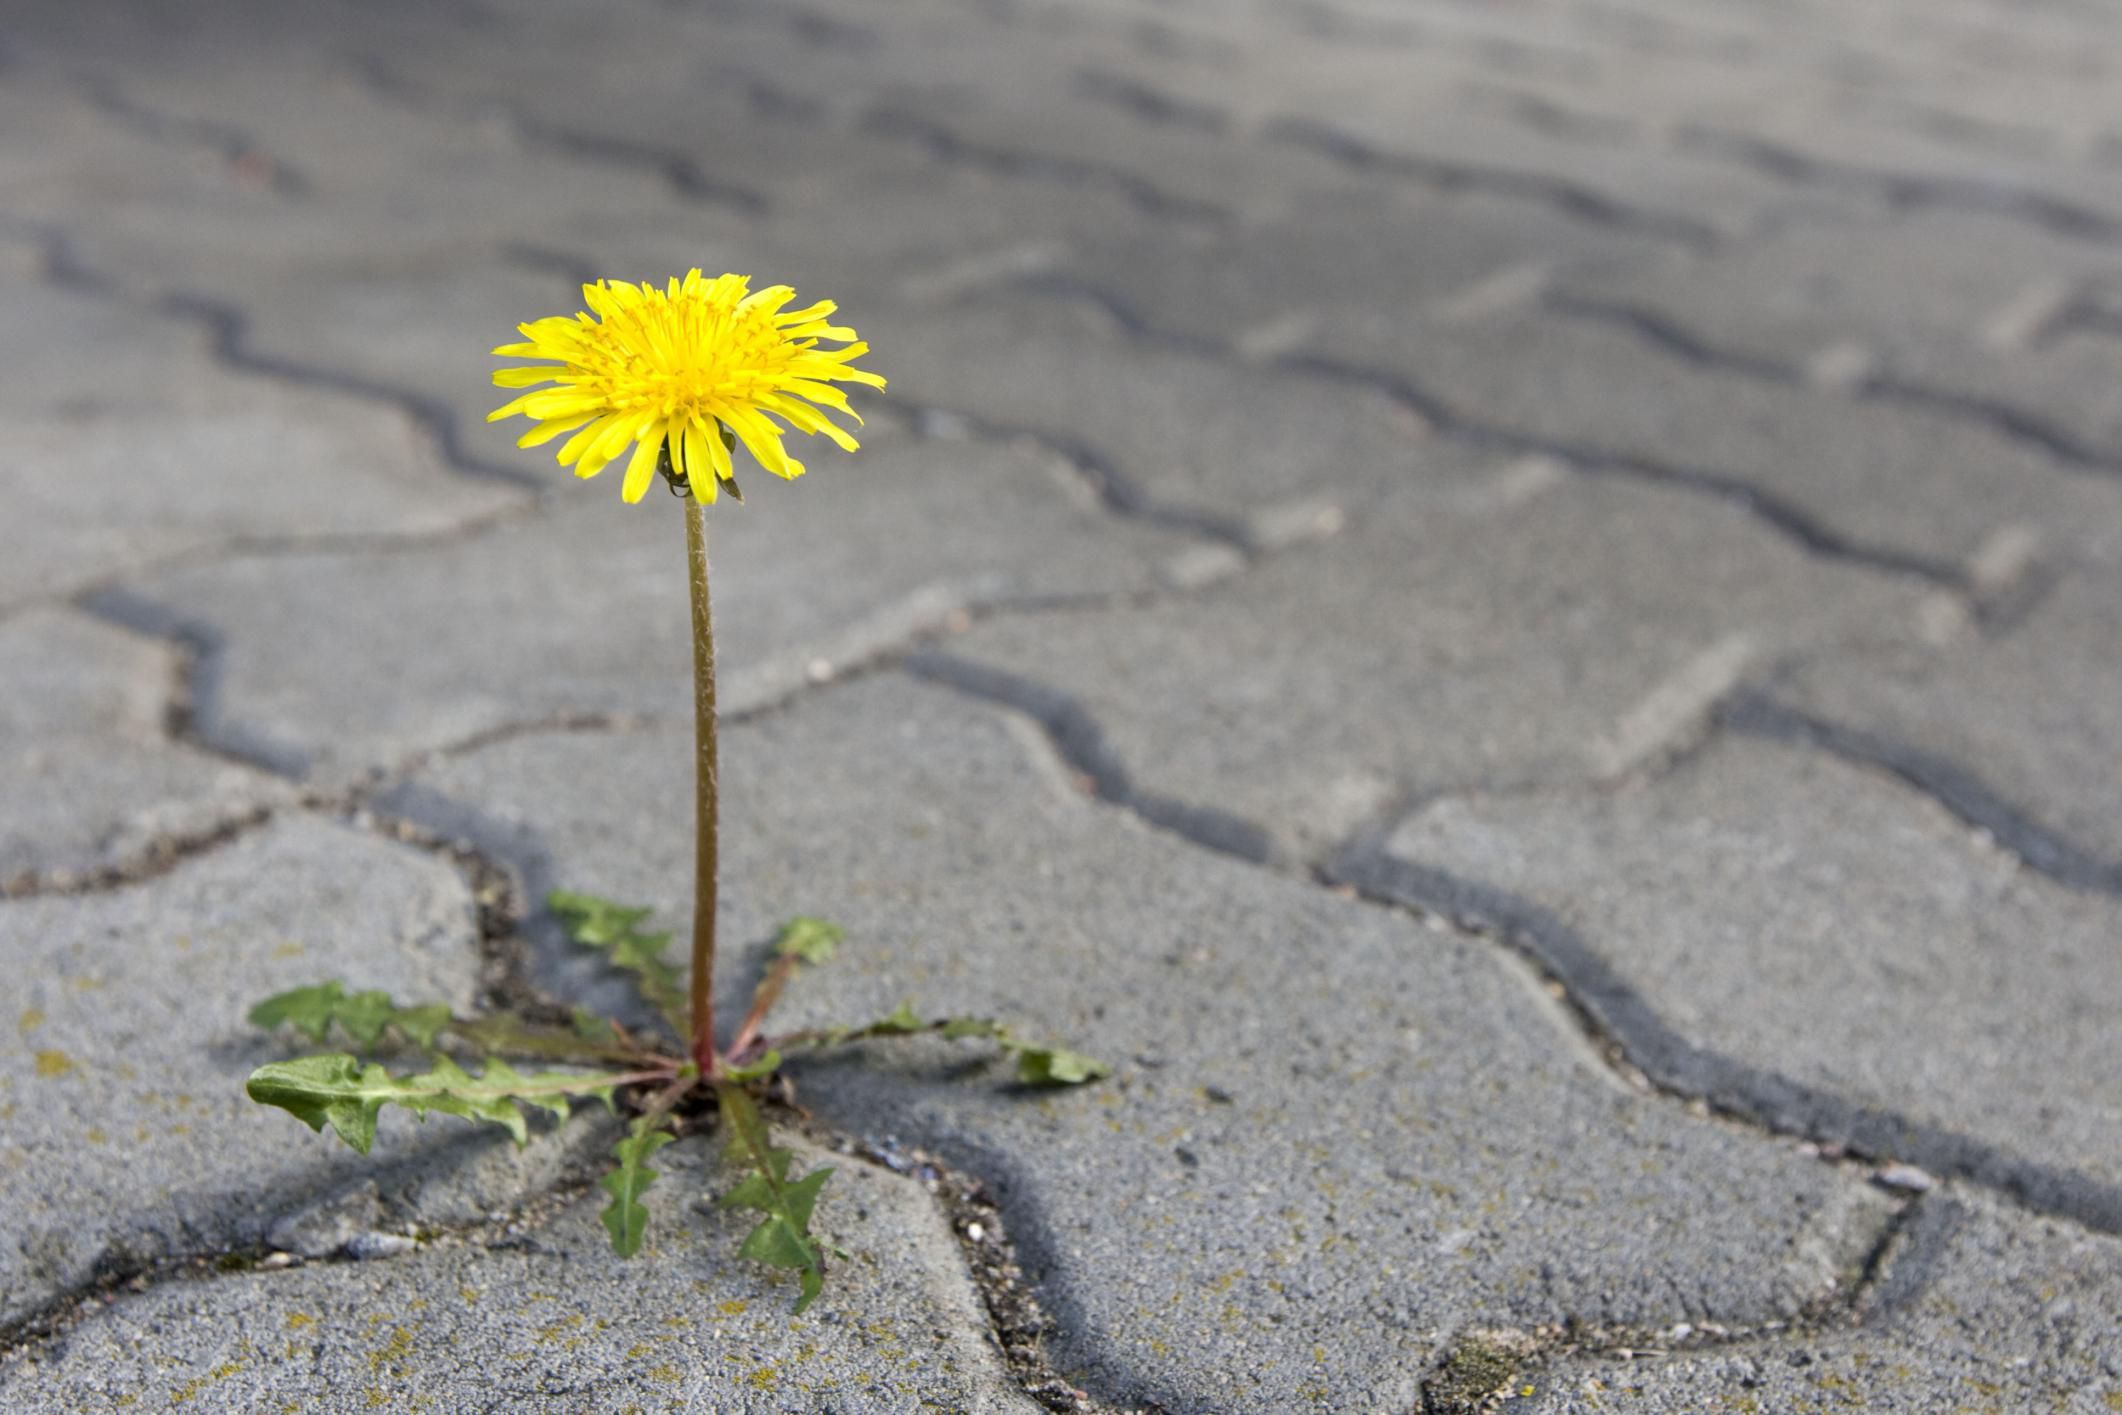 How To Remove Weeds In A Sidewalk Or Driveway